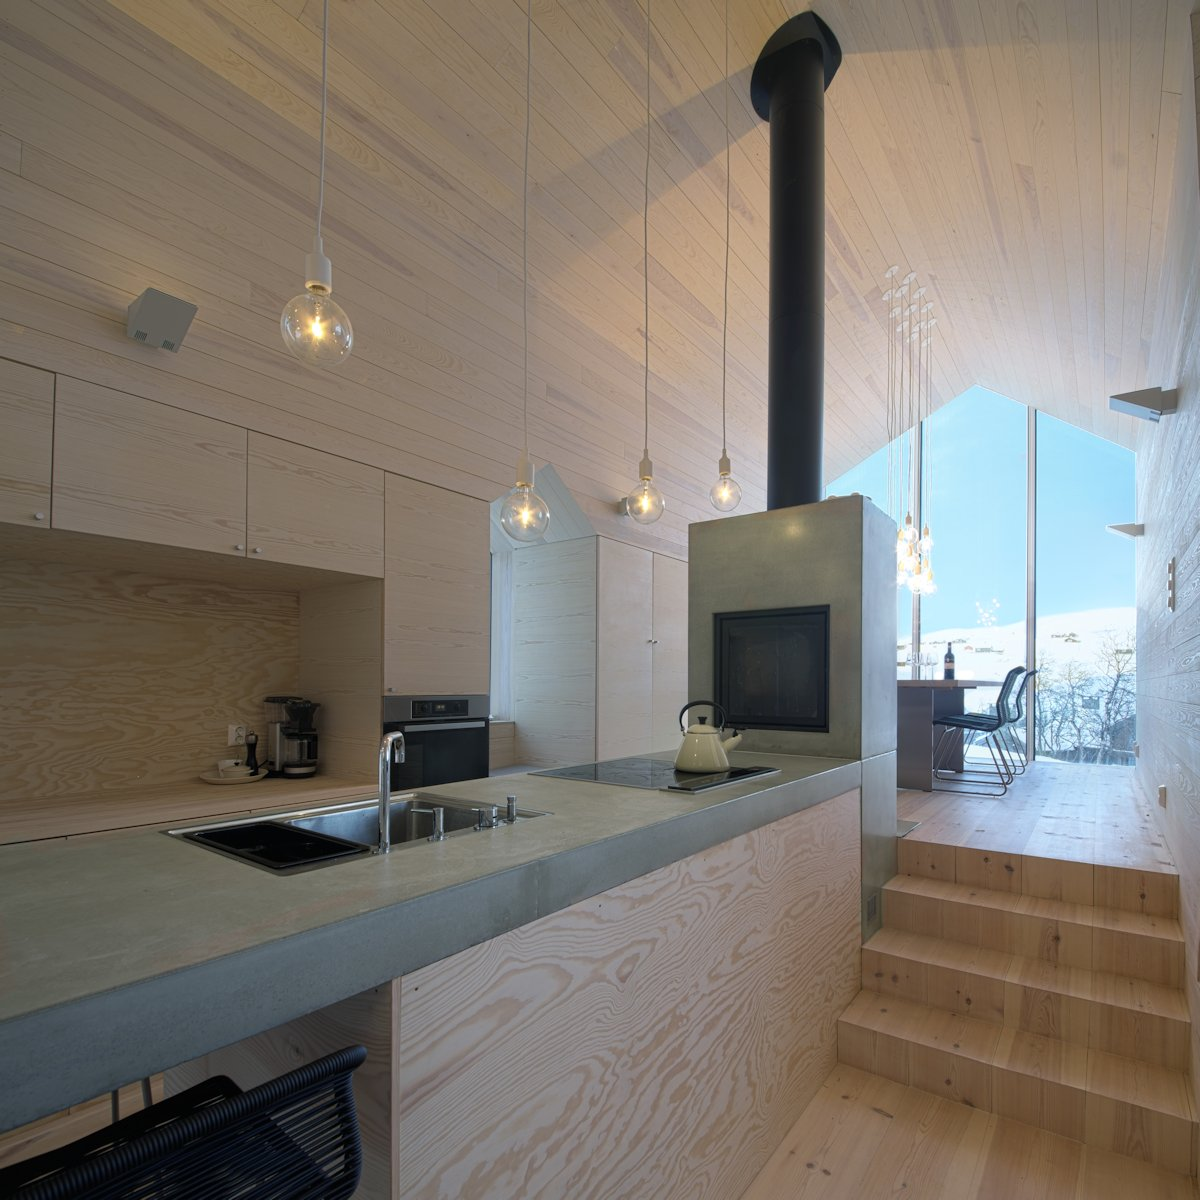 Kitchen, Lighting, Open Plan Living, Holiday Lodge in Havsdalen, Norway